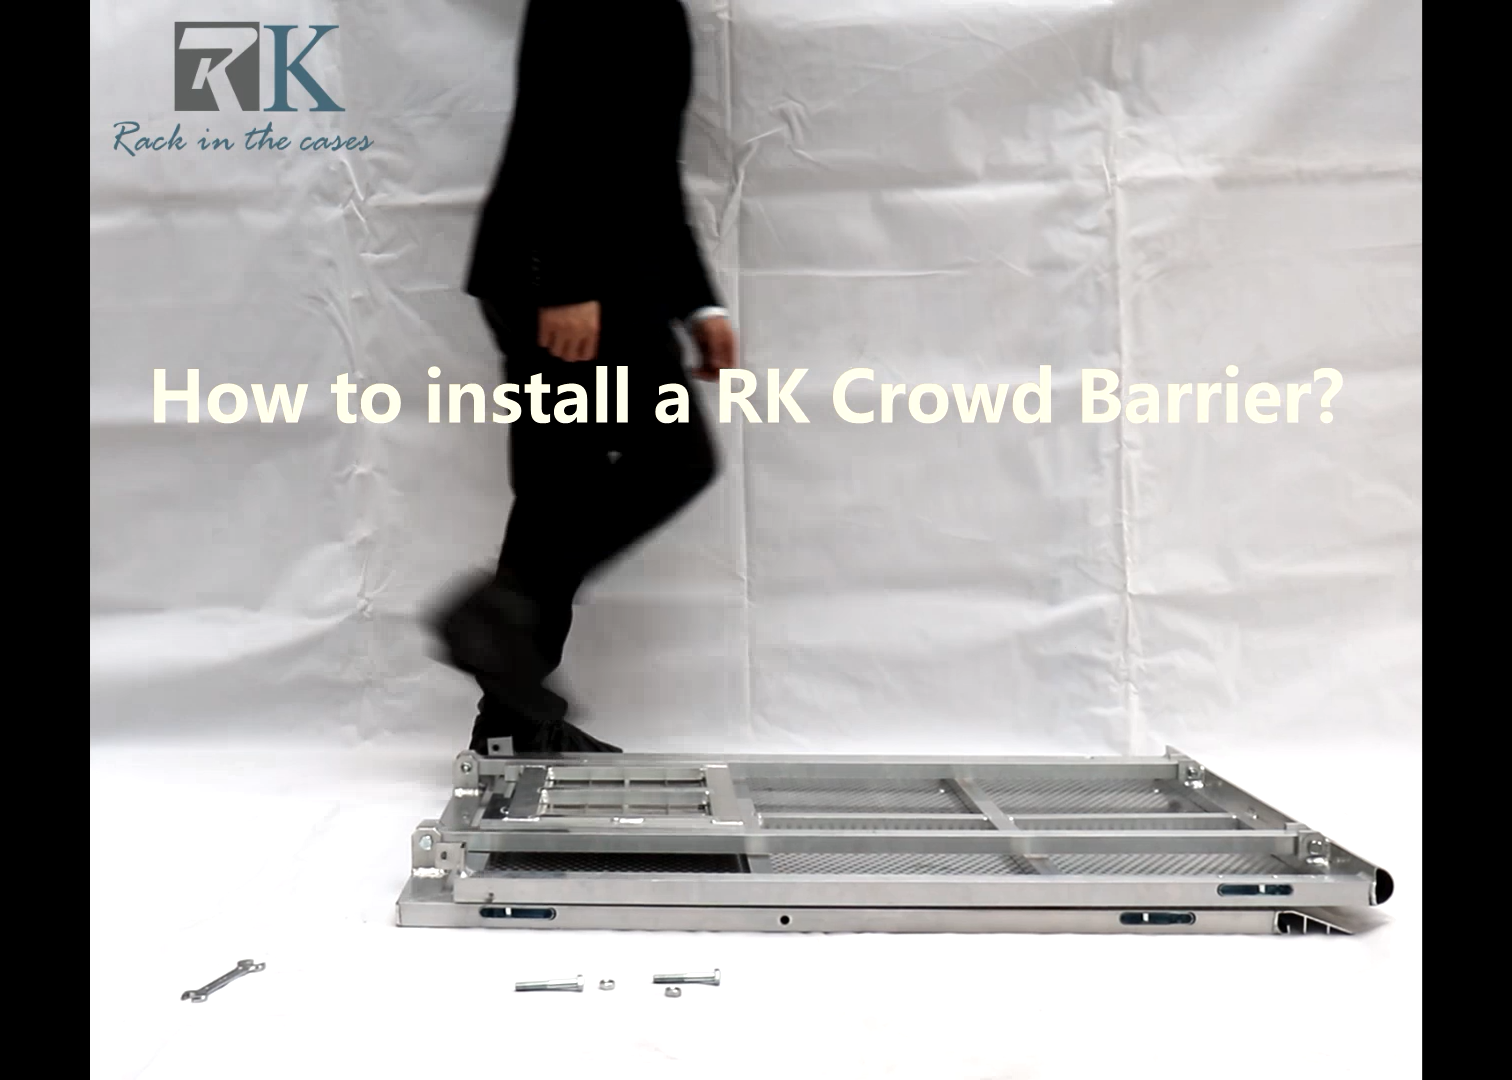 How to make a RK crowd control barriers?